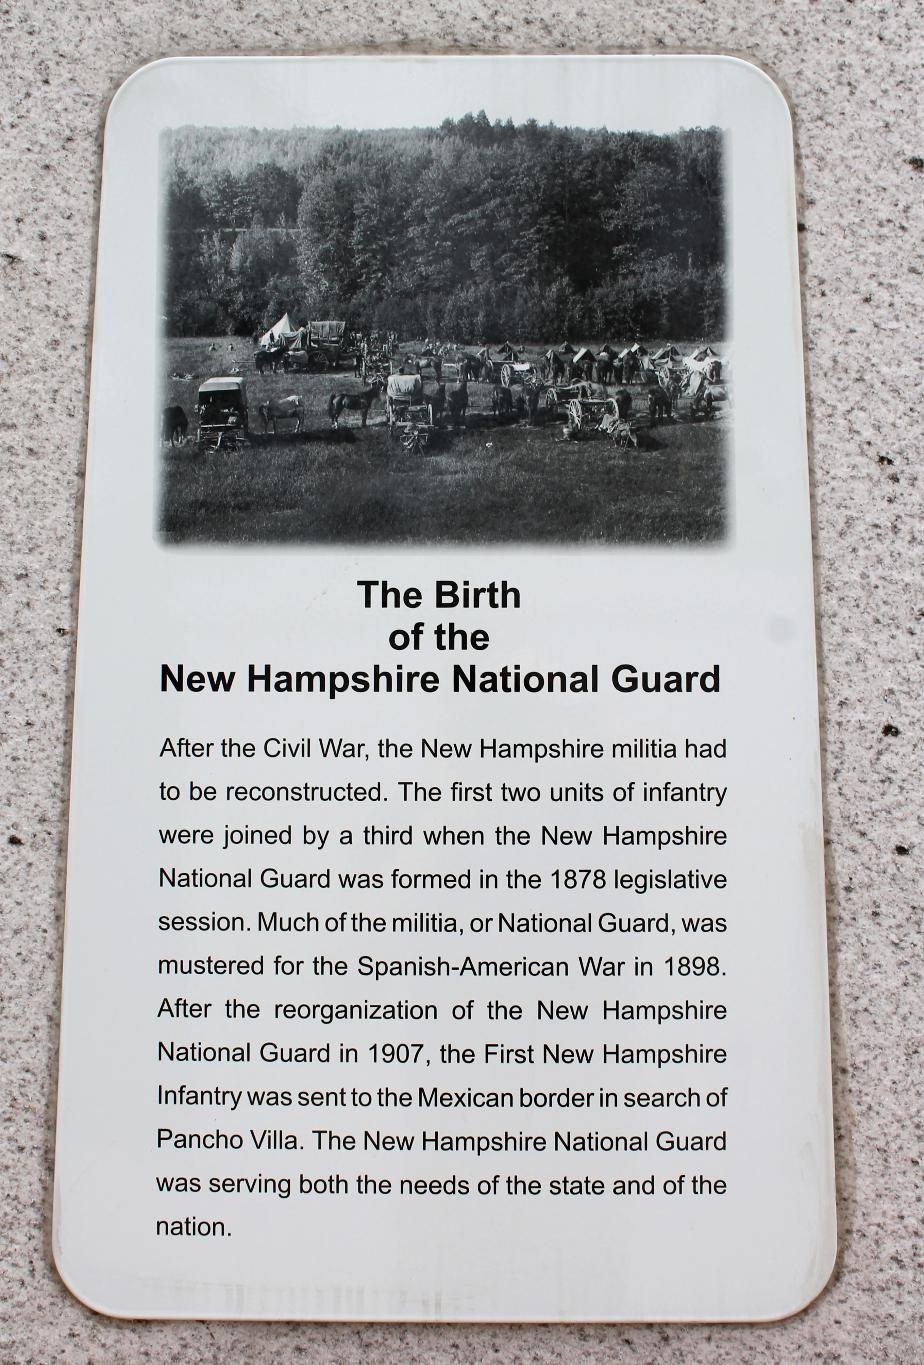 NH State Veterans Cemetery - Birth of the New Hampshire National Guard